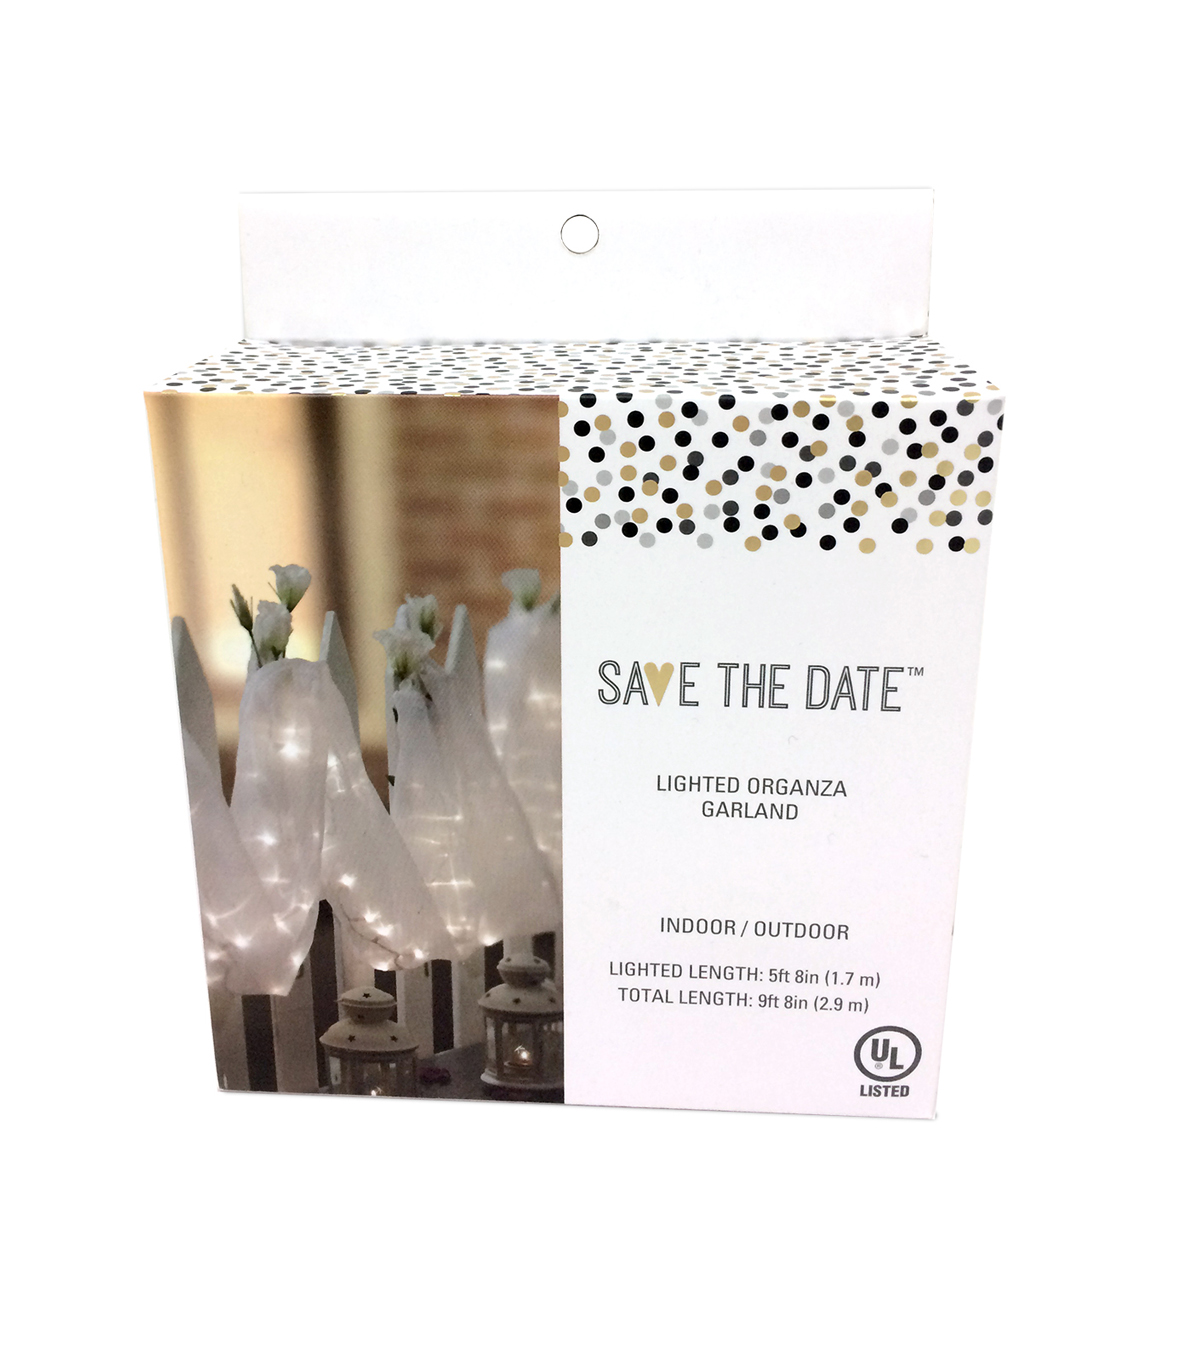 Save The Date Lighted Organza Garland